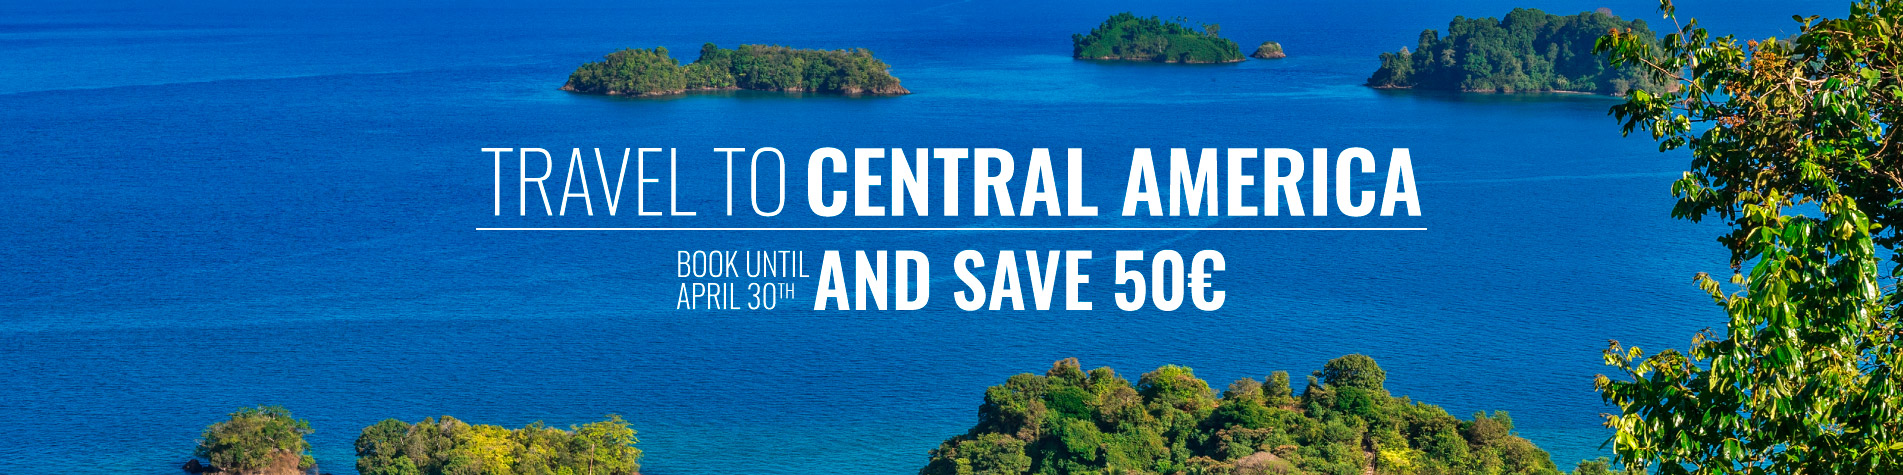 Travel To Central America and Save 50€